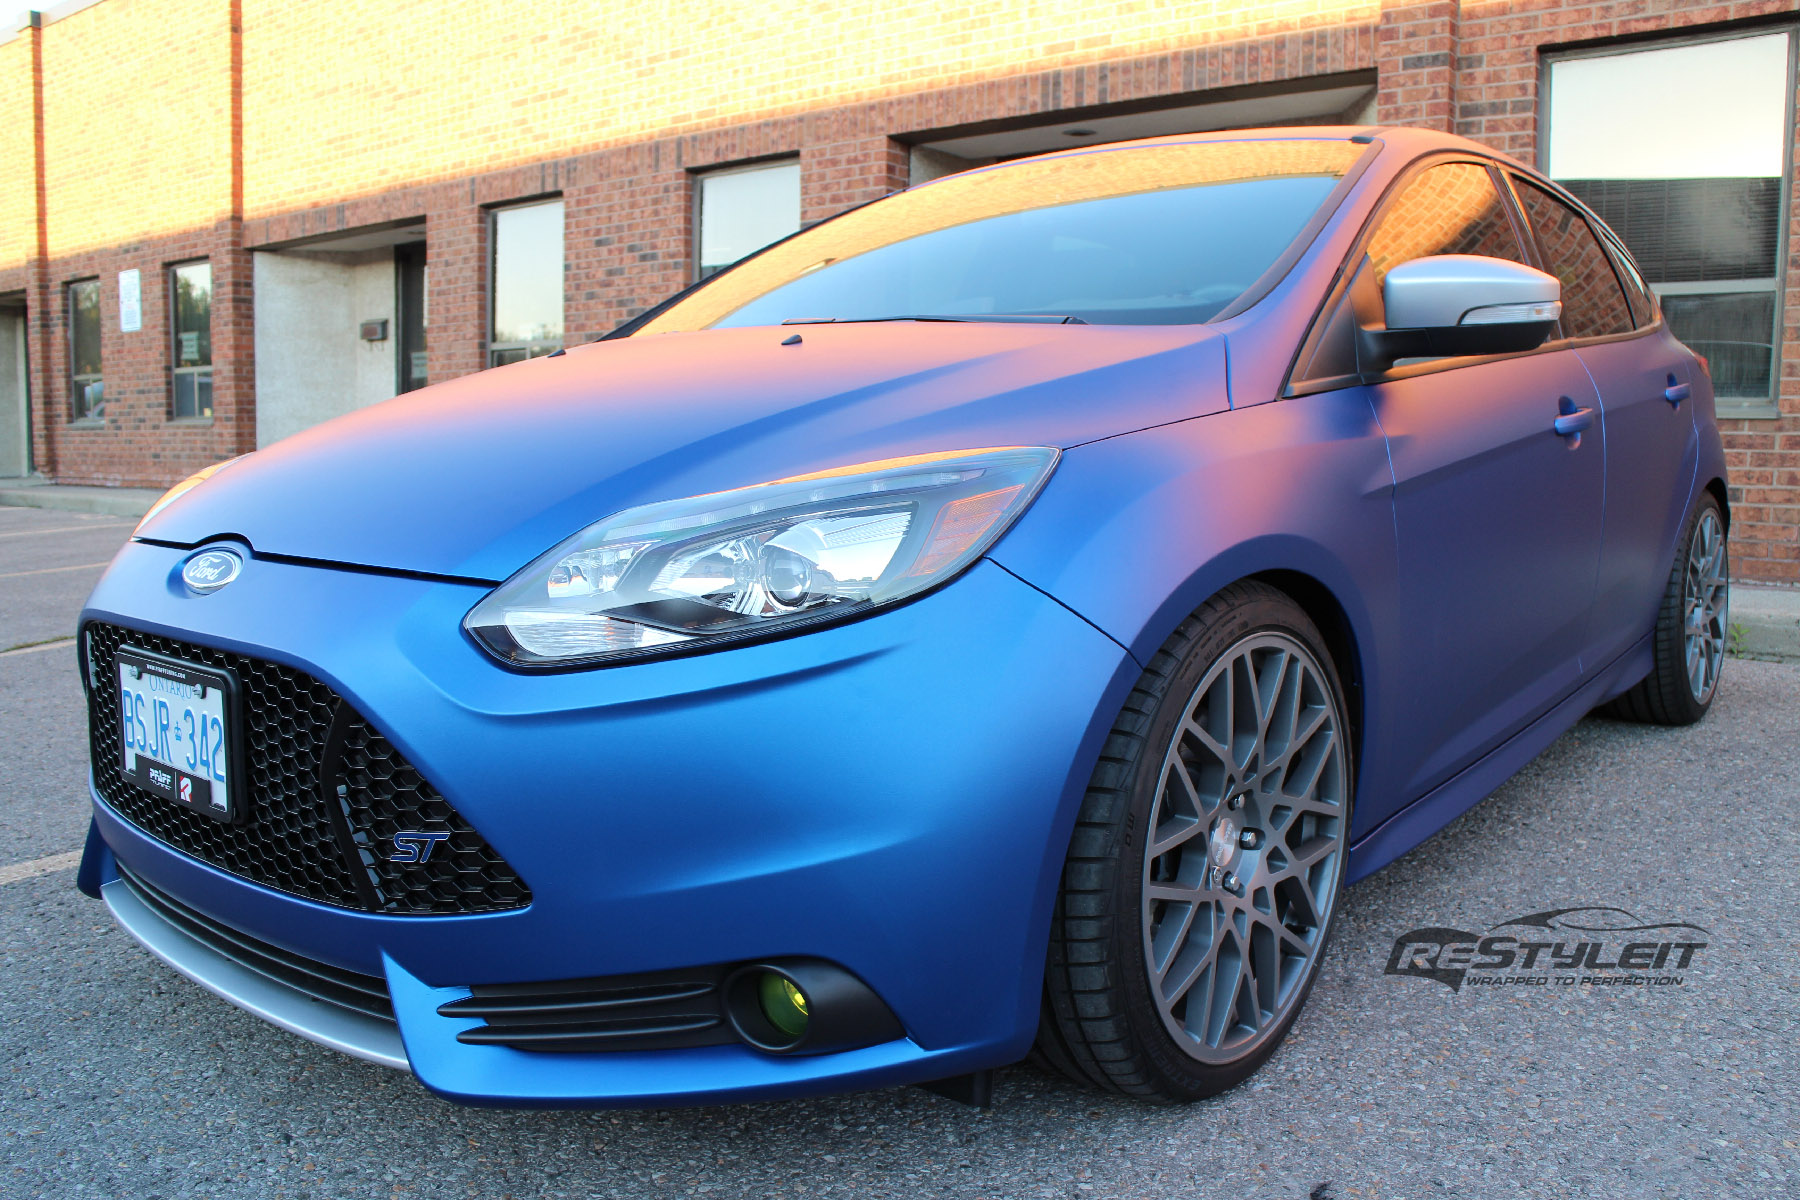 Matte Metallic Blue Ford Focus St Vehicle Customization Shop Vinyl Car Wrap Car Wrap In